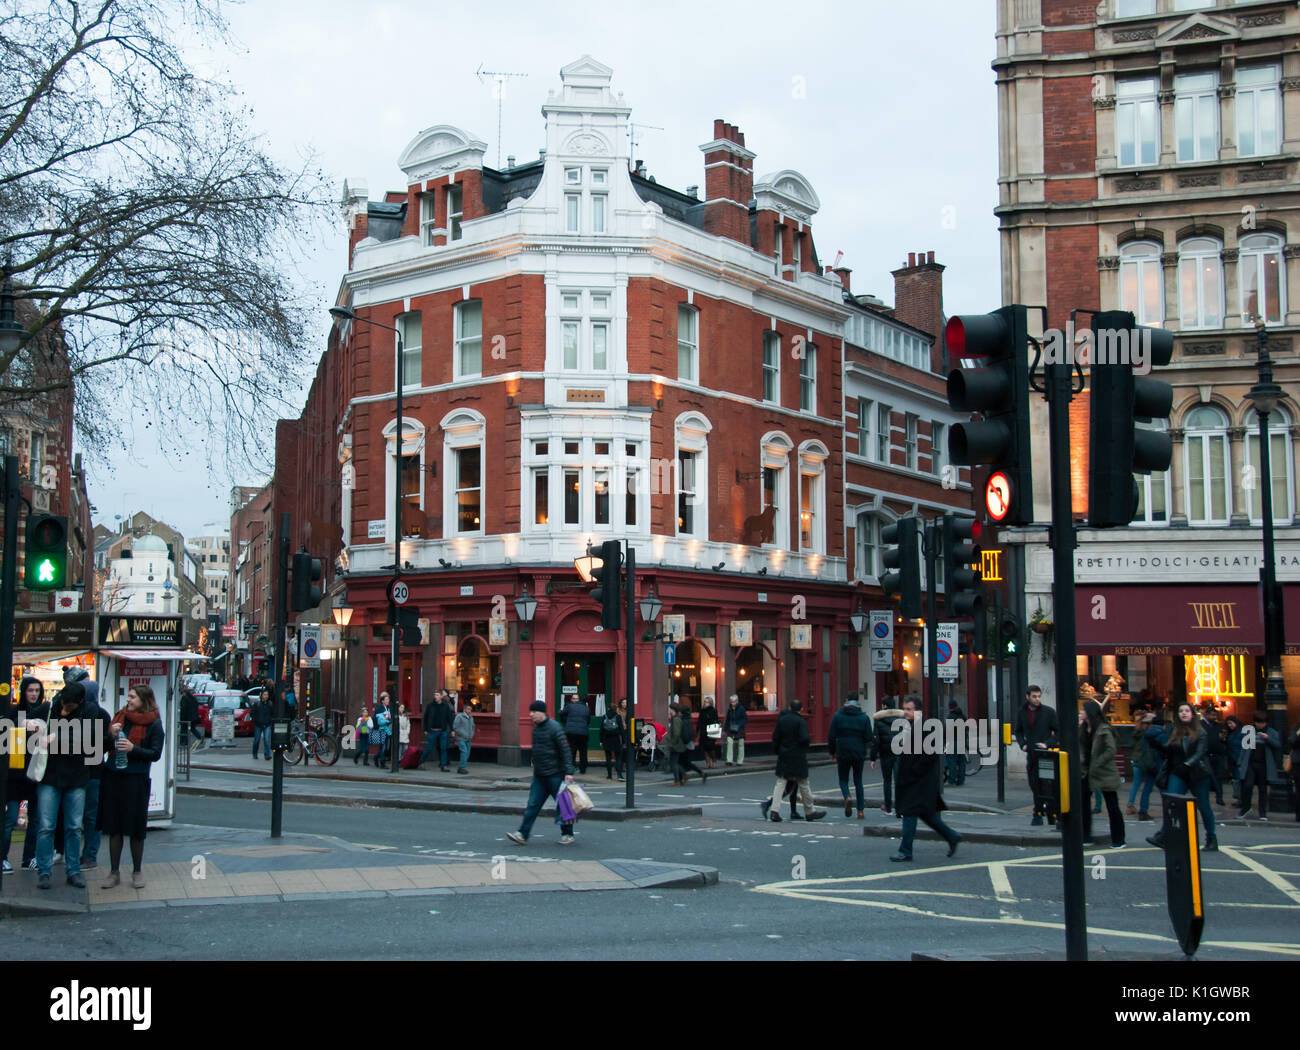 London, England. 06 march, 2016. Shaftesbury Avenue in the late afternoon. Pedestrins and traffic light. - Stock Image